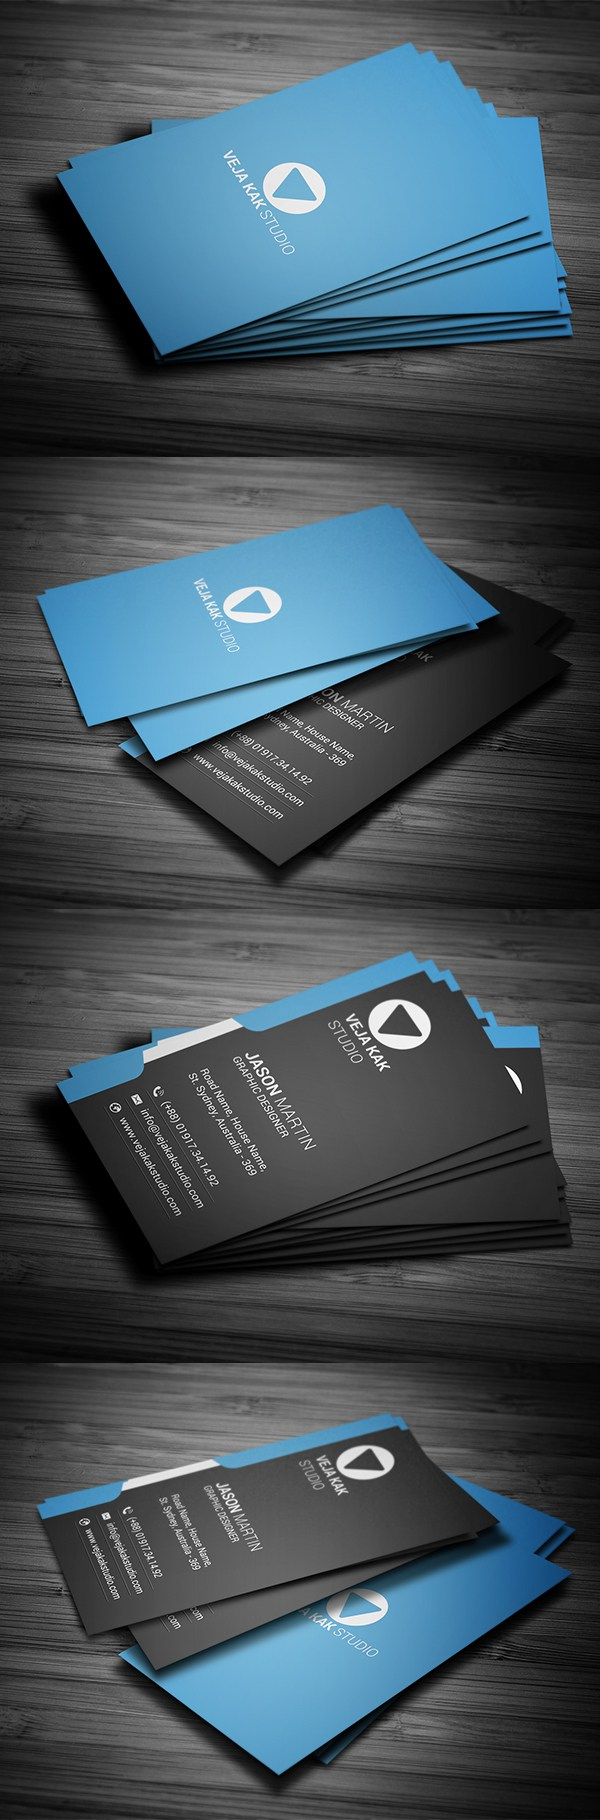 Modern vertical business card business cards pinterest our unique business cards designs have been created to help you make your own business cards with ease all business cards are fully customizable and come reheart Gallery